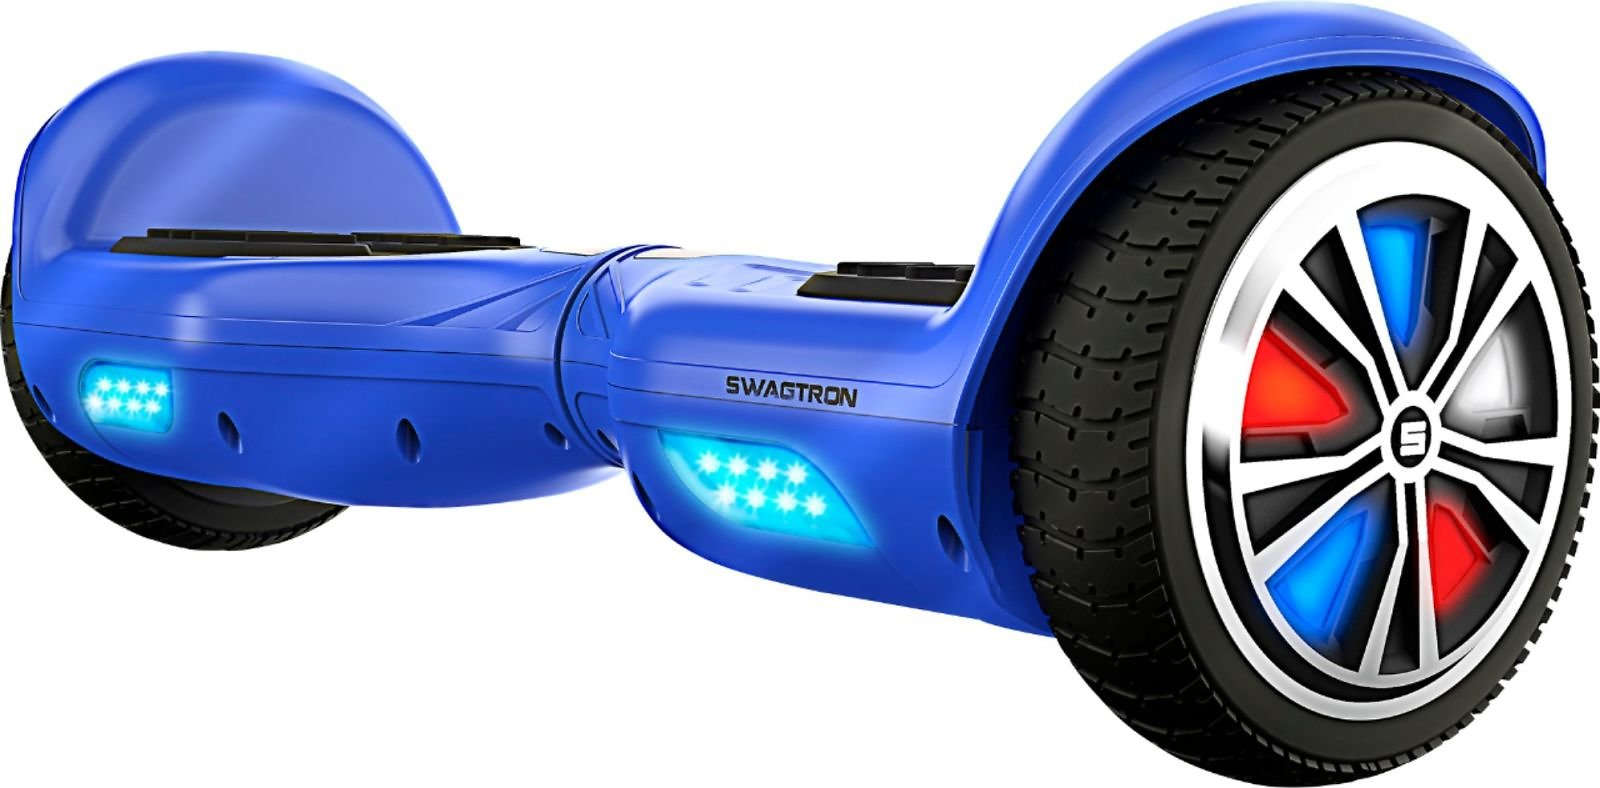 Swagtron T882 Electric Self-Balancing Scooter + Free Shipping